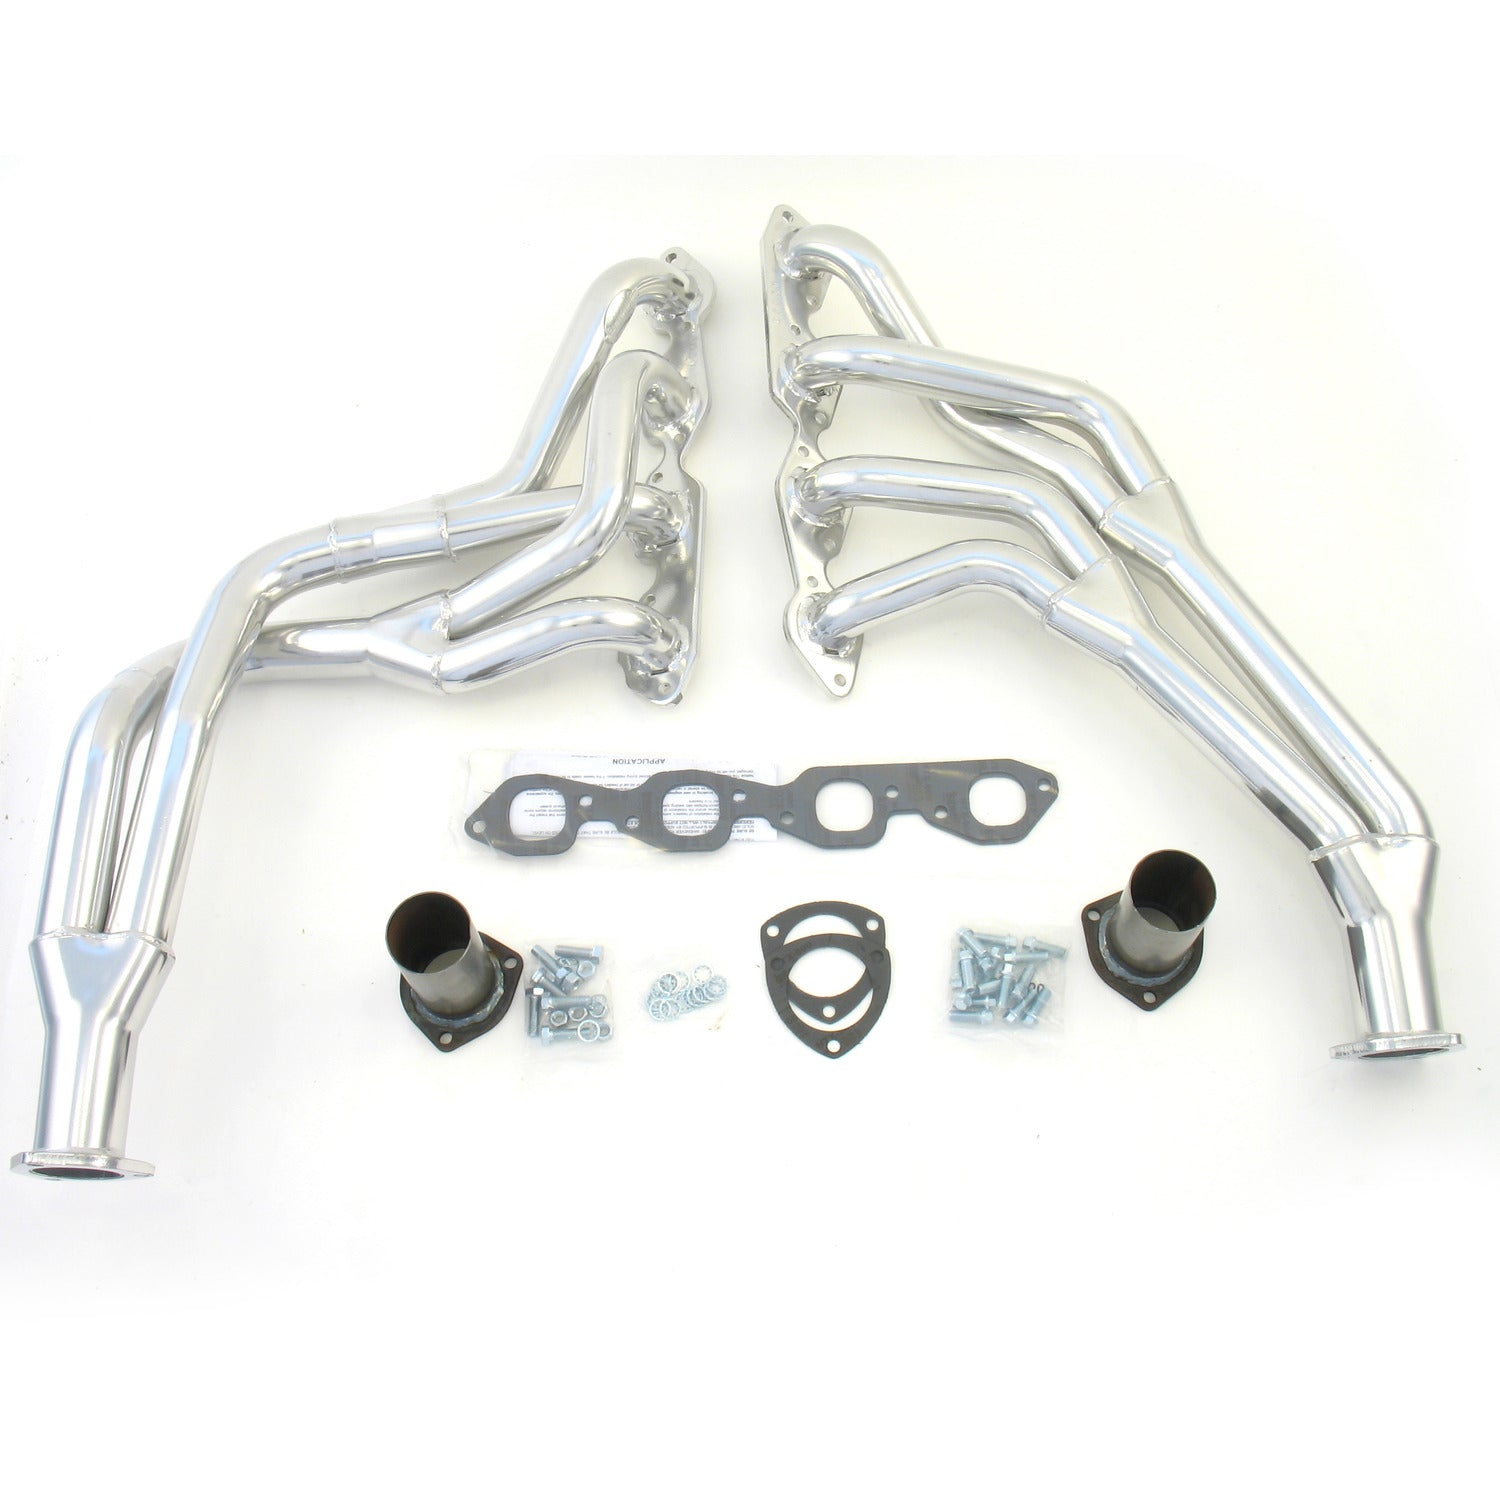 "Doug's Headers D303Y 1 3/4"" Tri-Y Header Chevrolet Truck Big Block Chevrolet 68-87 Metallic Ceramic Coating"